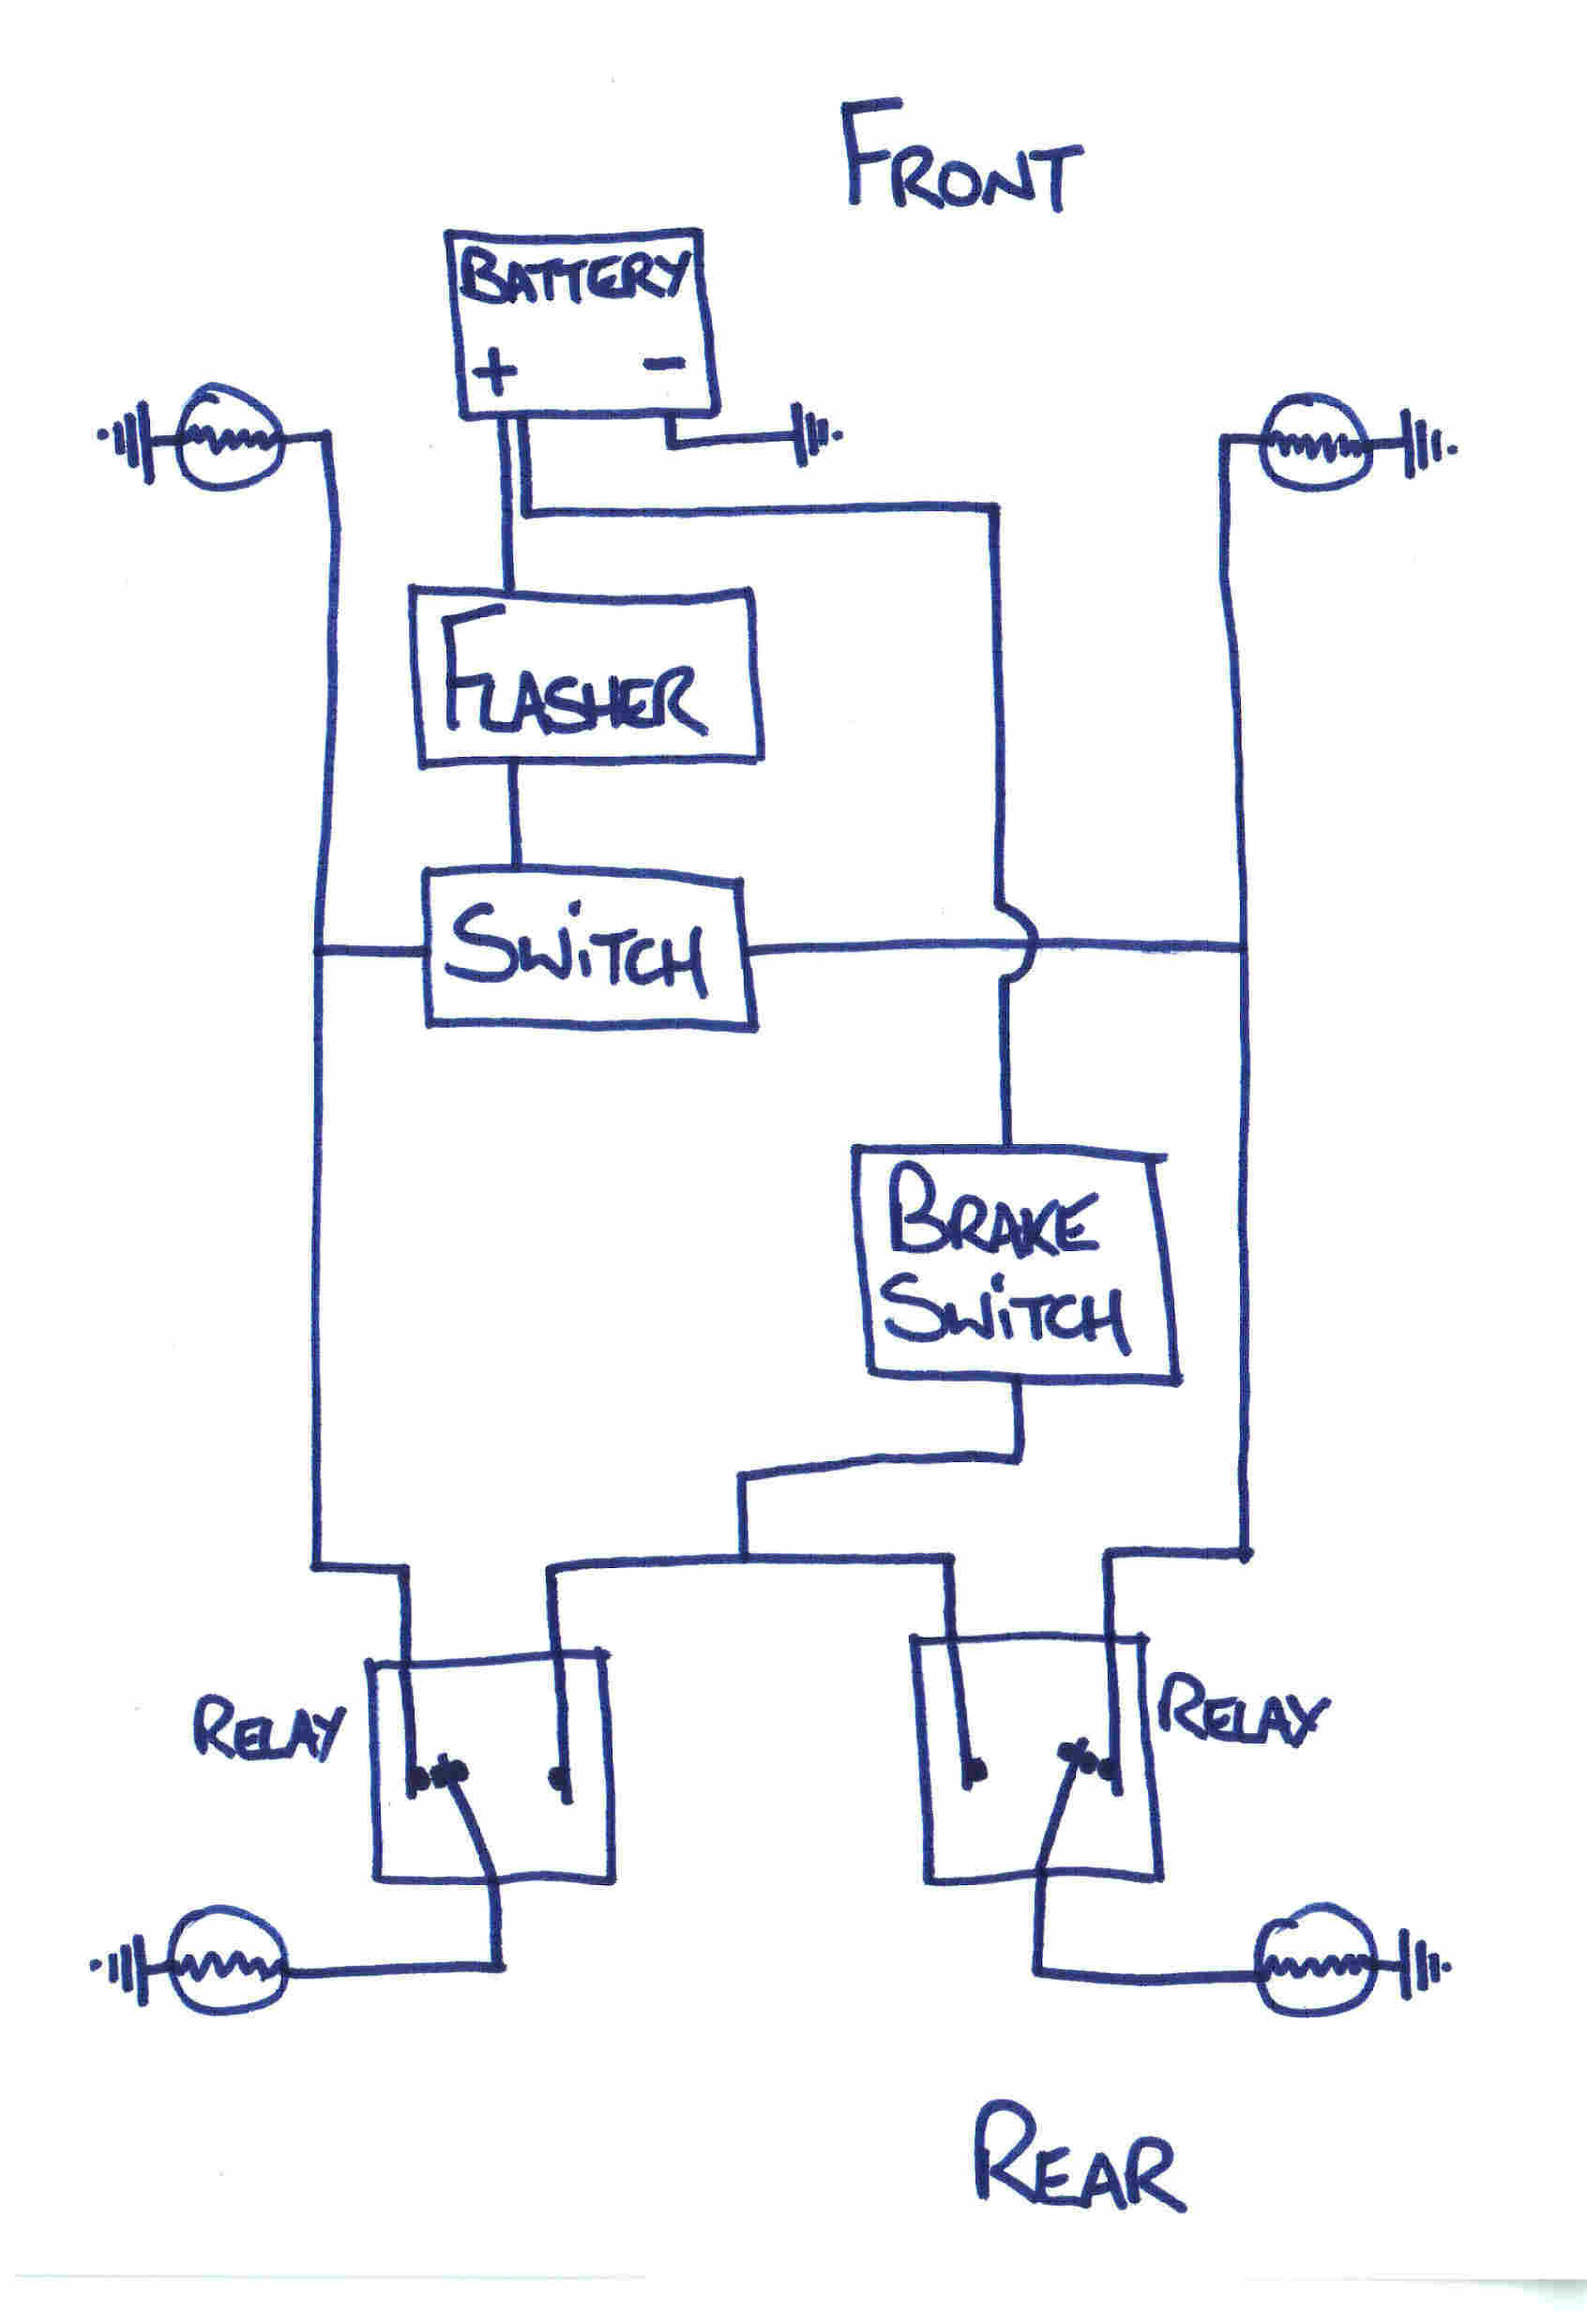 Lucas Indicator Switch Wiring Diagram 37 Images 128sa 35327 Key 4 Position Modern Flasher Circuits Garys Flashers At